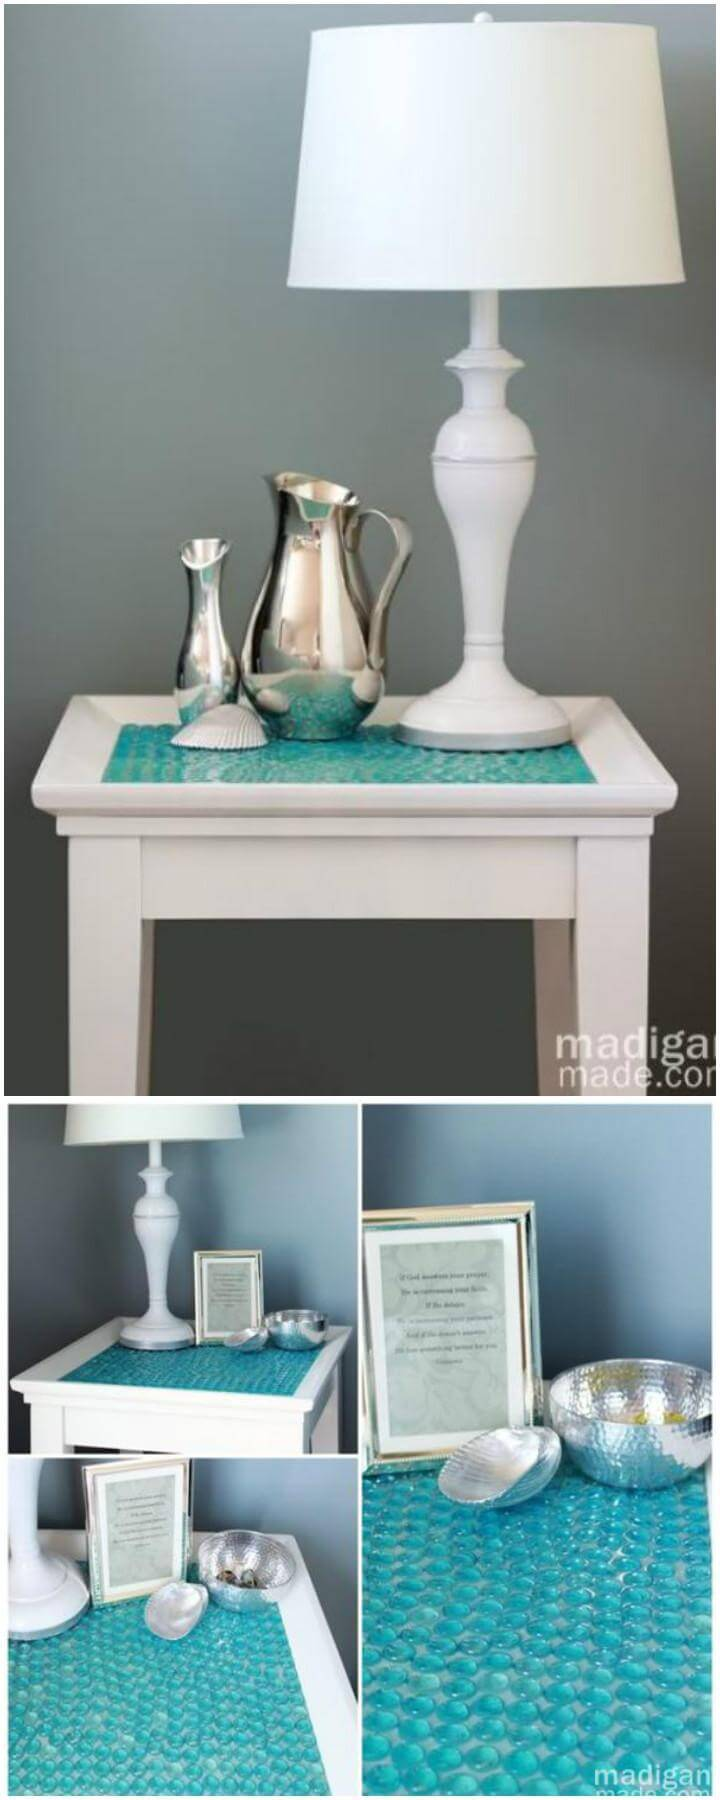 DIY Glass Gems Tiled Table